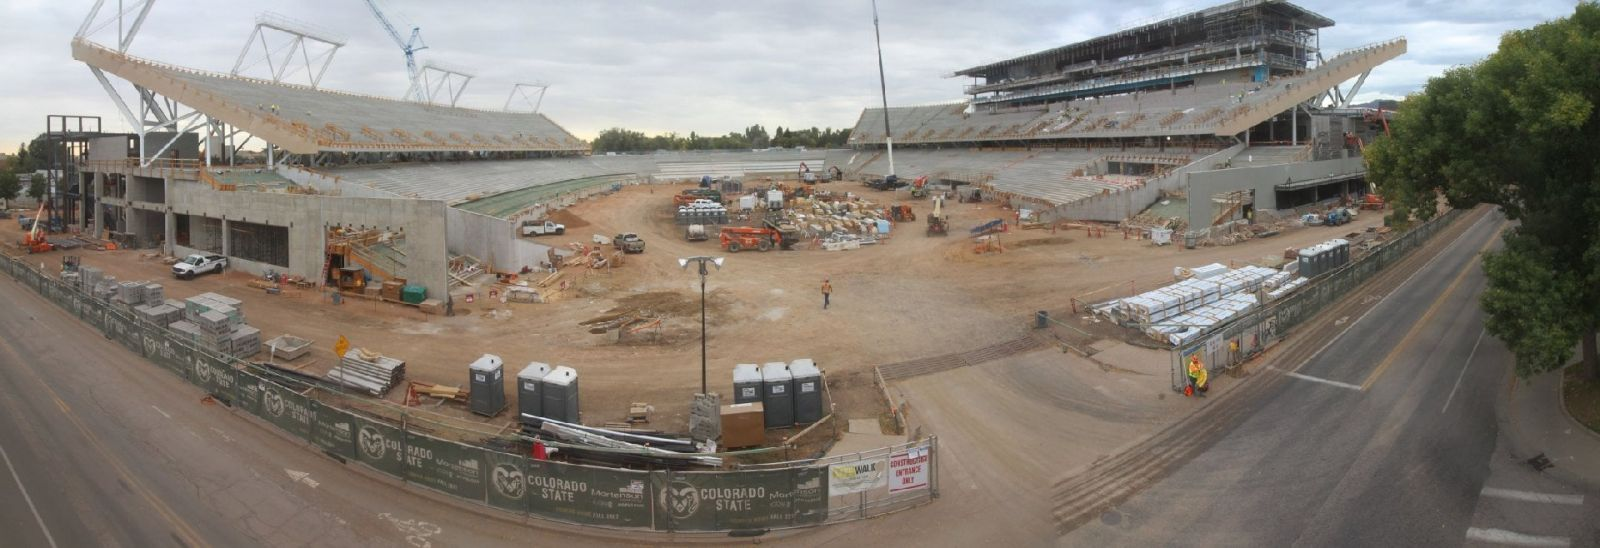 Colorado State University Stadium - Panorama